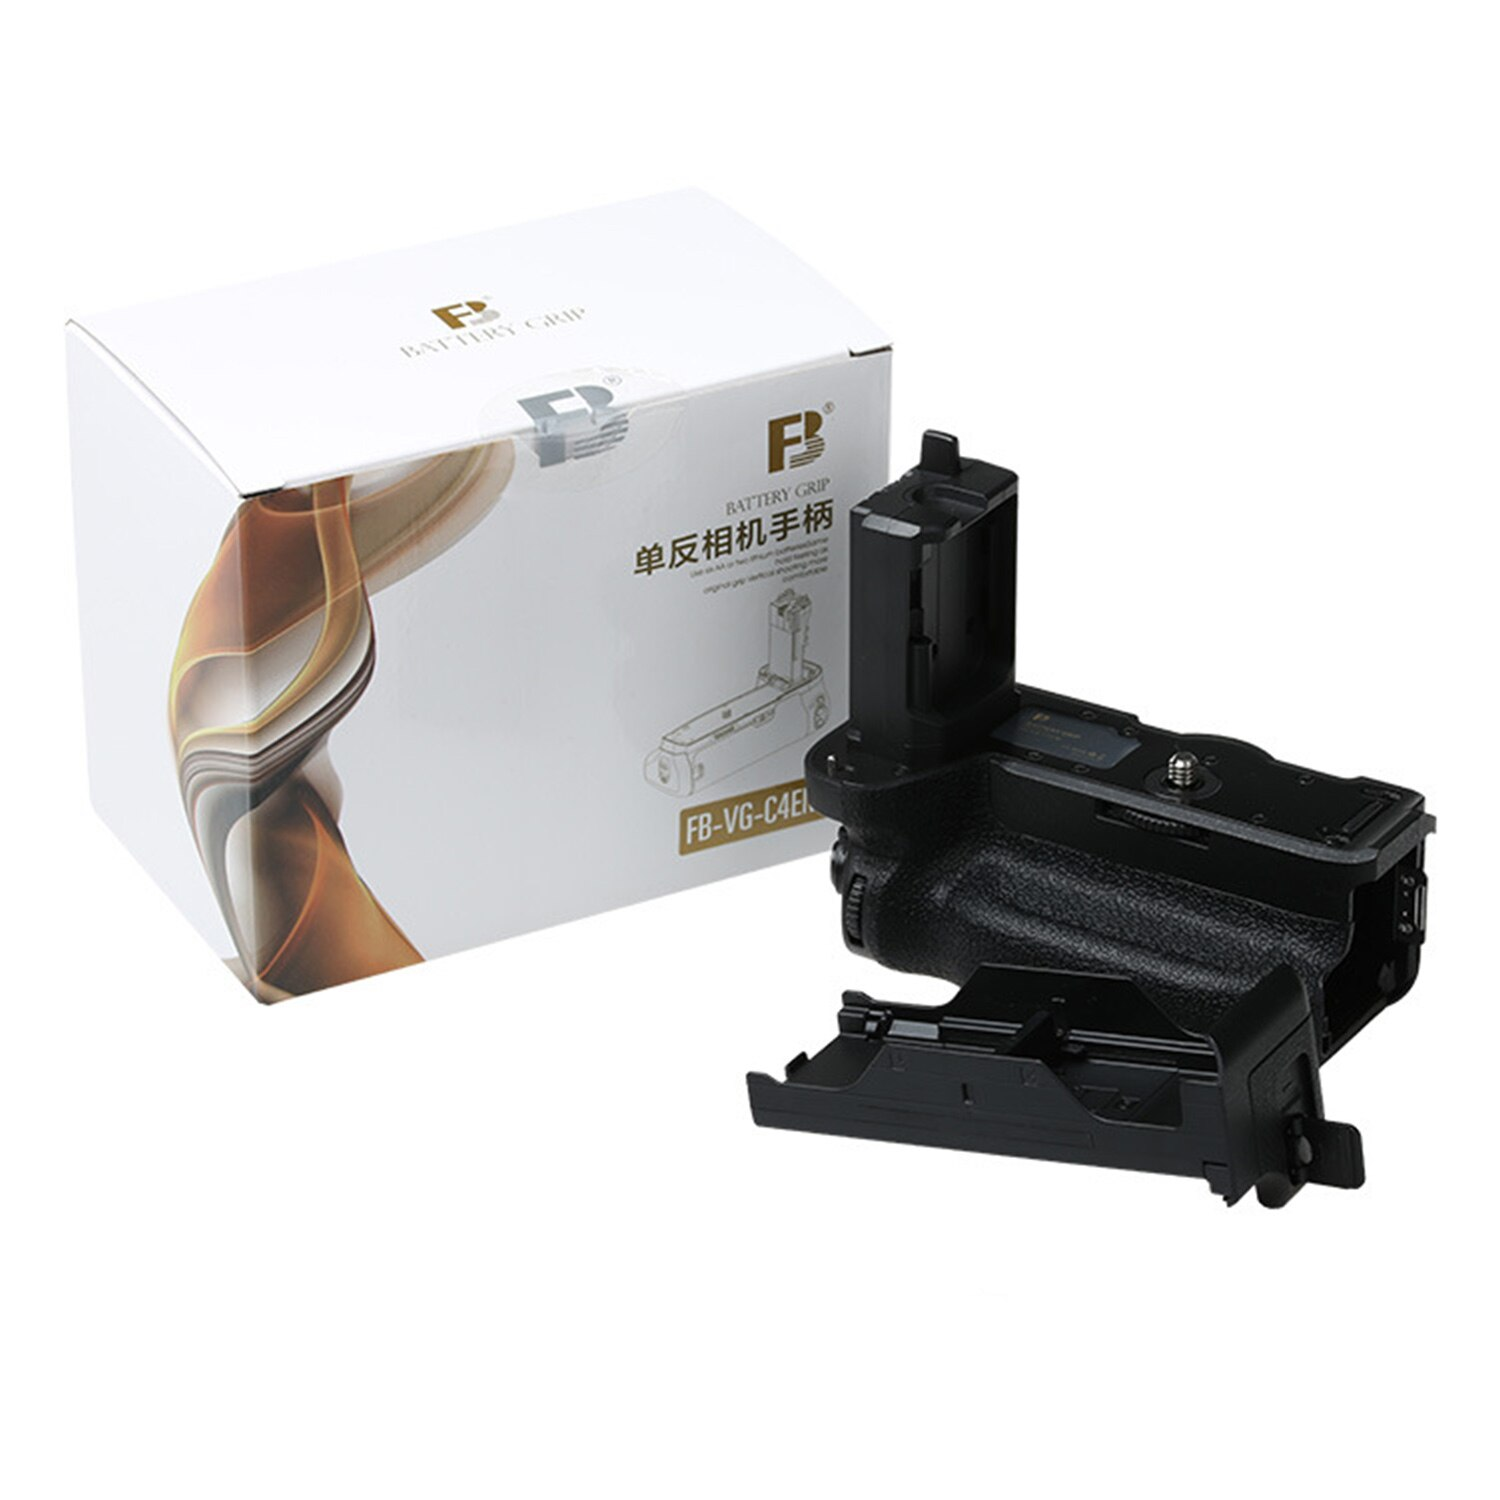 Vg-C4Em Handle Battery Pack Battery Grip for Sony A9M2 A7R4 A7M4 A7Rm4 Slr Mirrorless Camera Handle enlarge